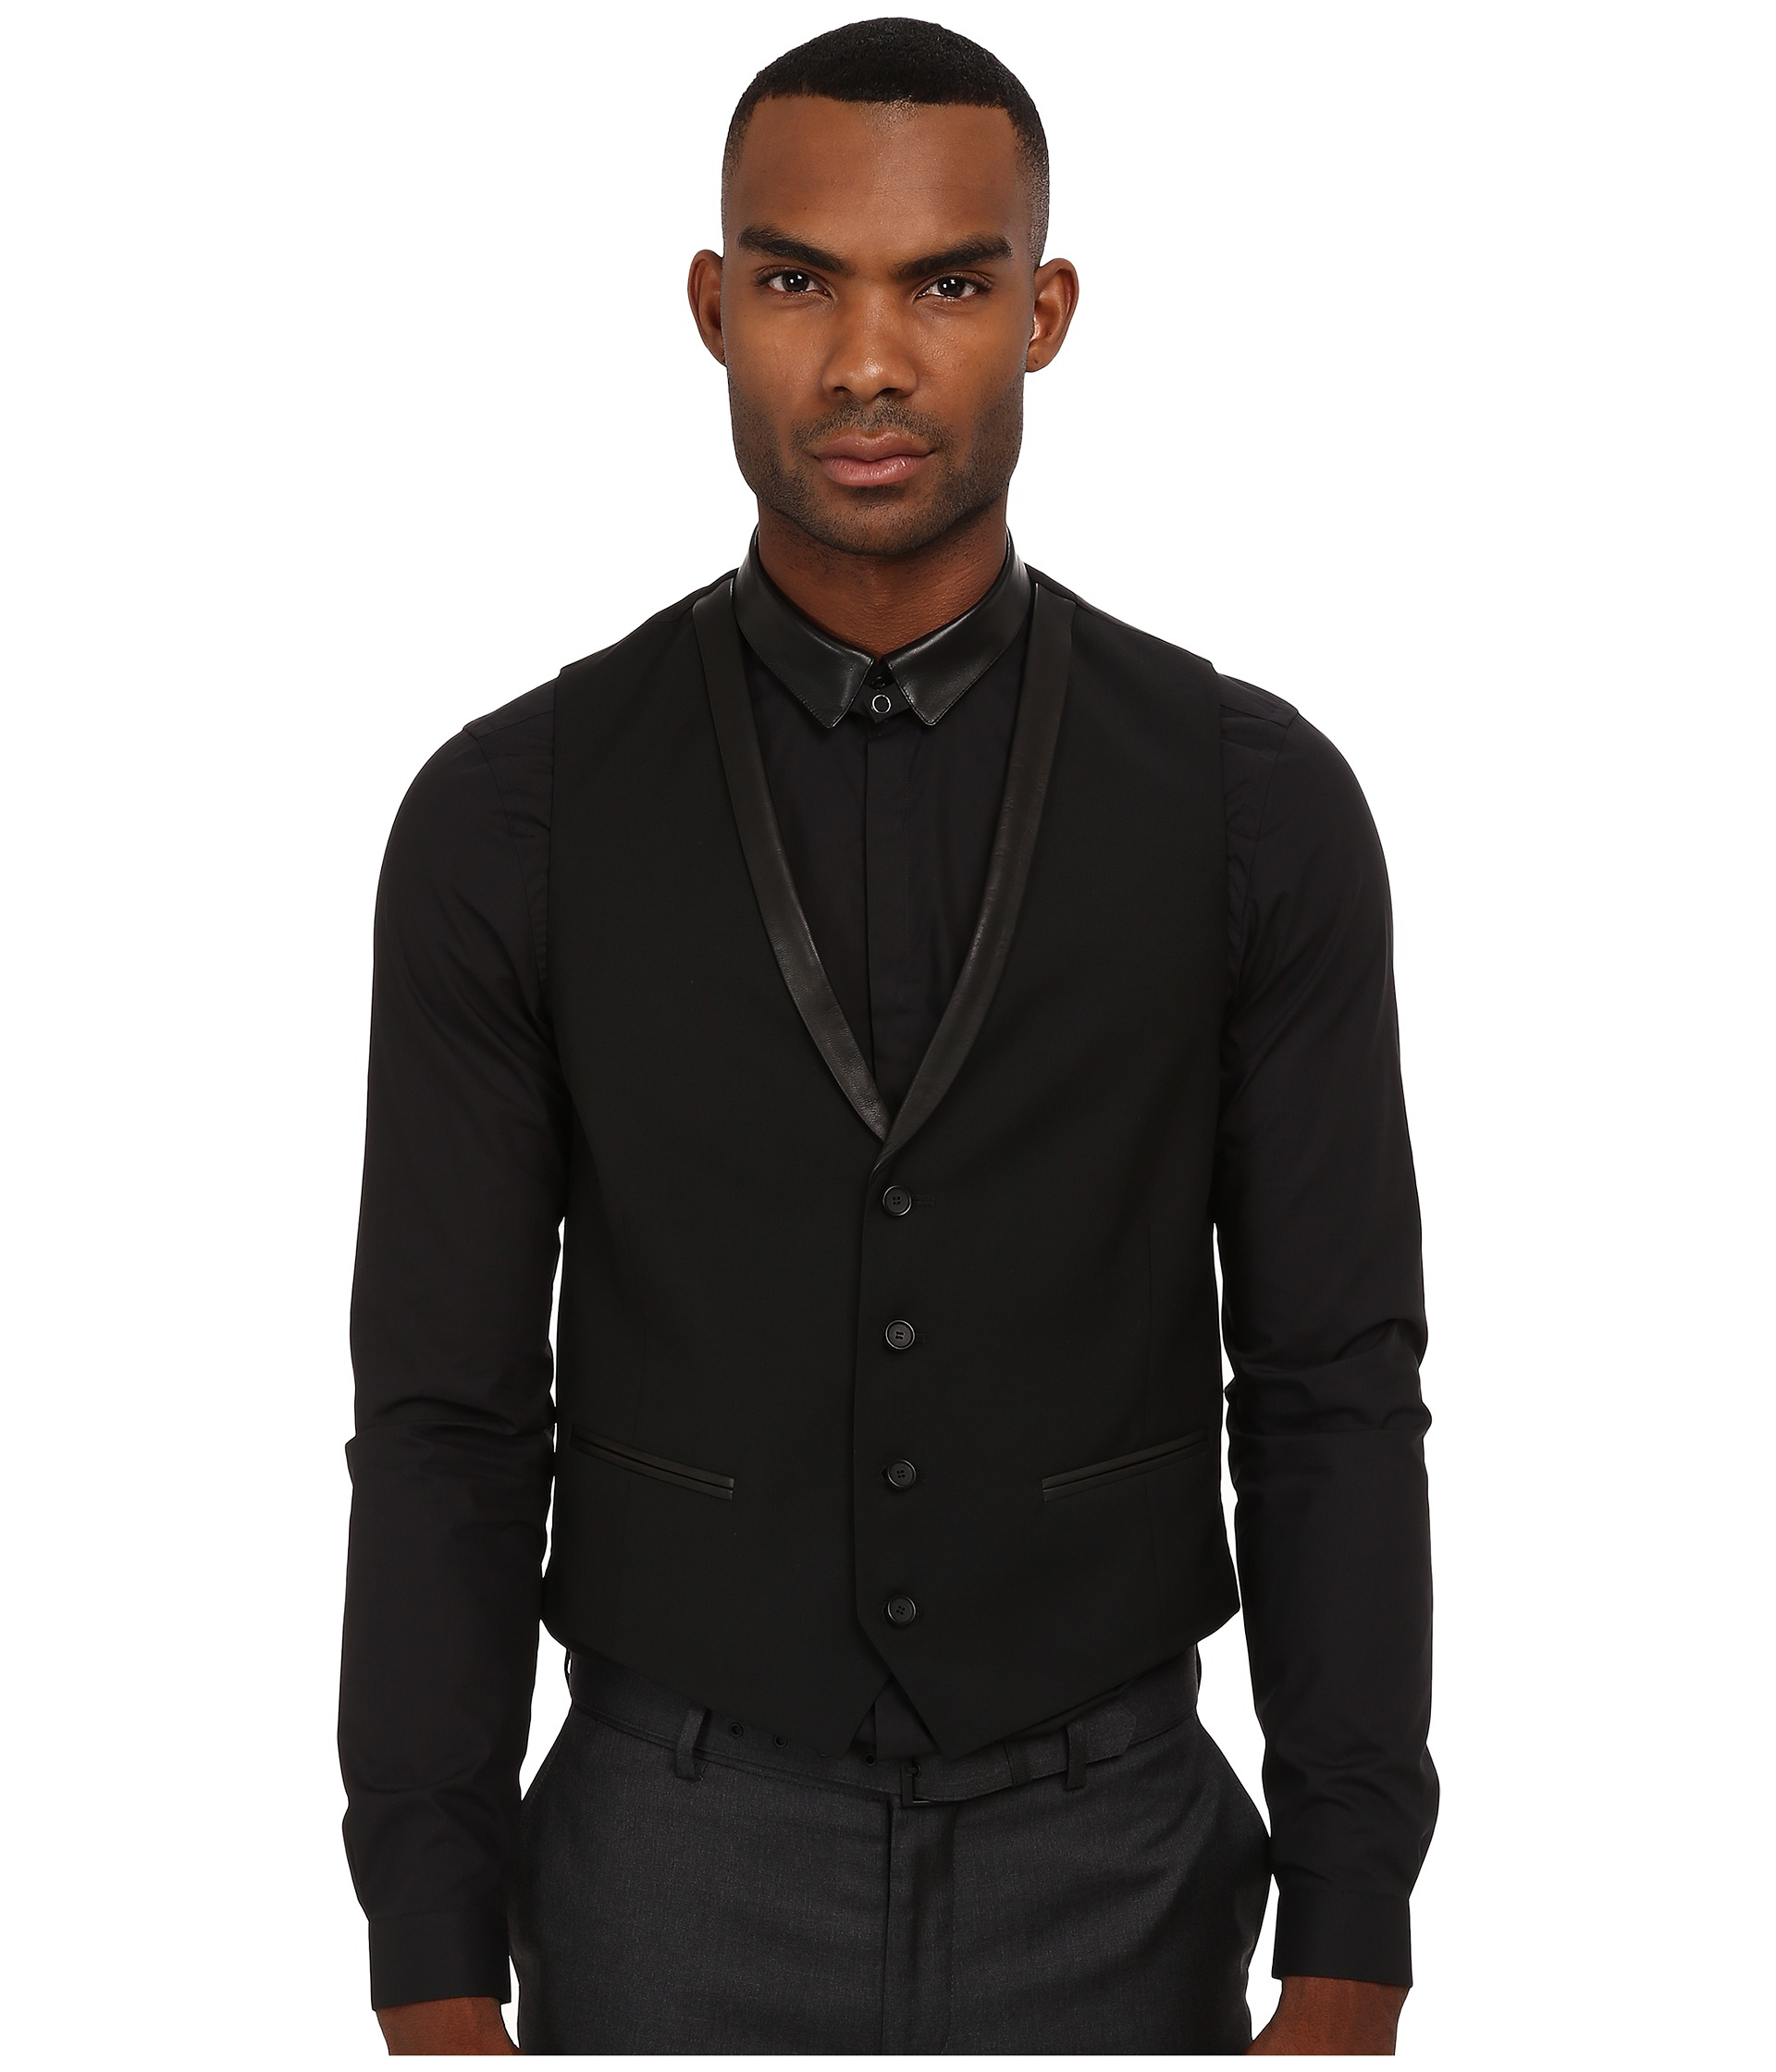 Black t shirt with suit - Gallery